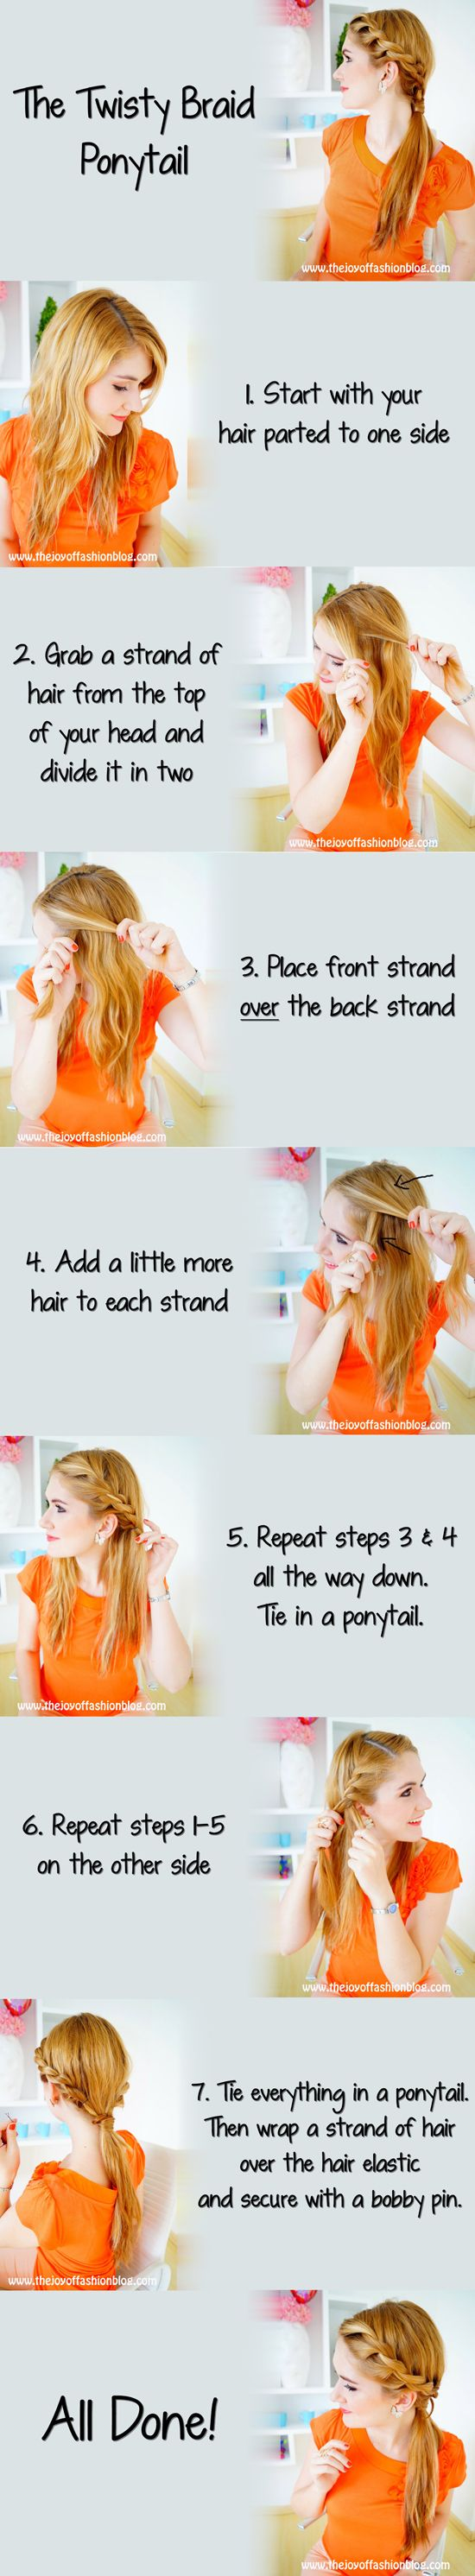 The Twisty Braid Hair Tutorial - with video! I think I could find a cuter way of ending it